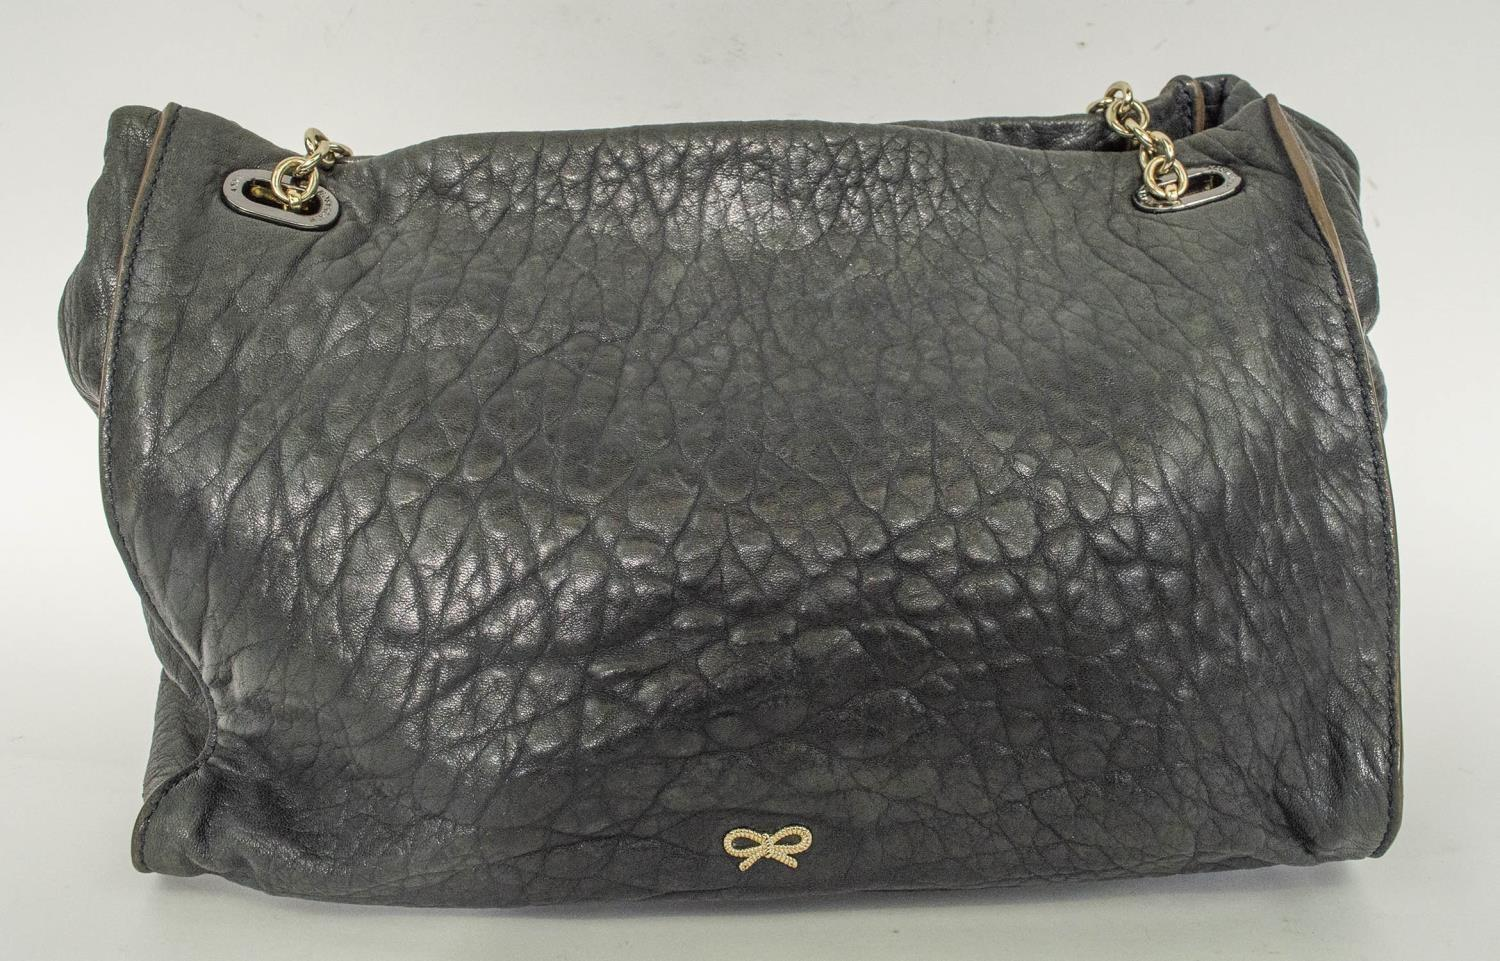 ANYA HINDMARCH SHOULDER BAG, leather with leather and chain strap, gun metal and silver hardware, - Image 3 of 9